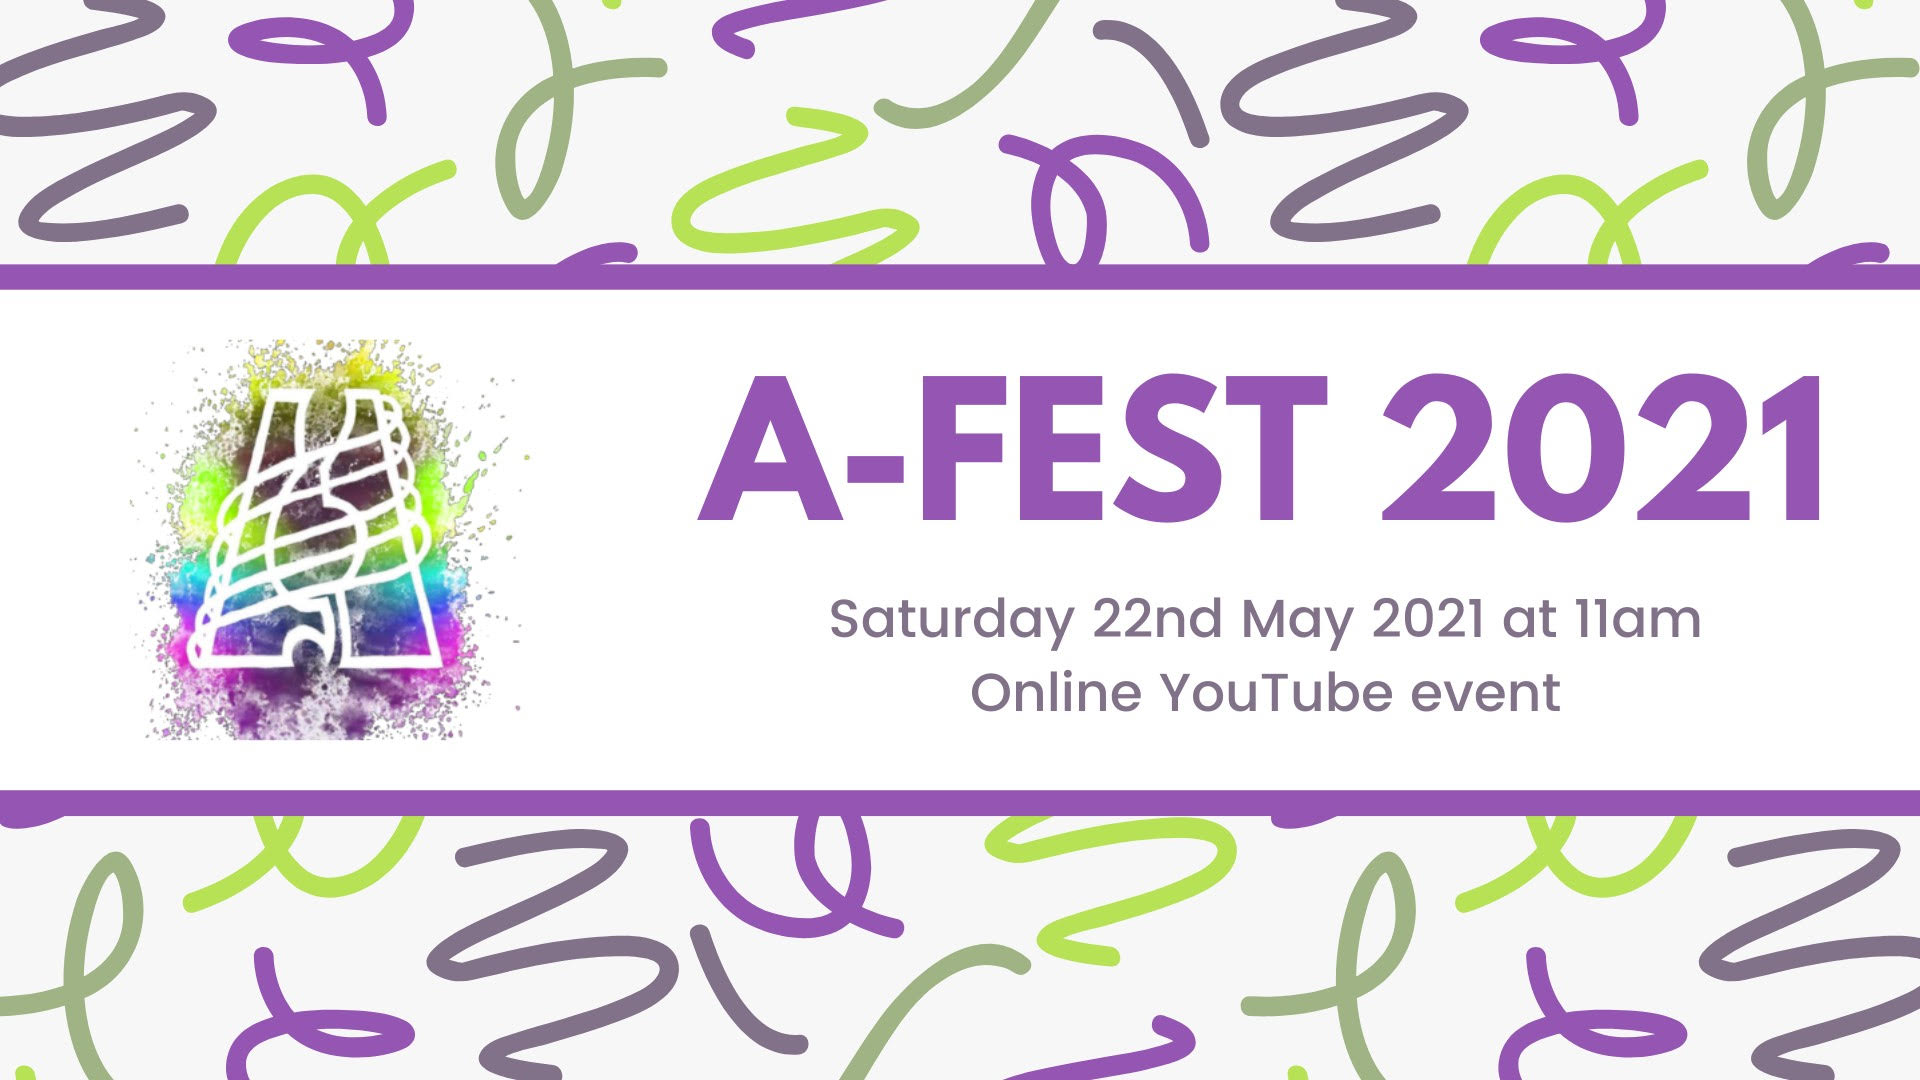 A Fest 2021 – Andover's Youth Festival